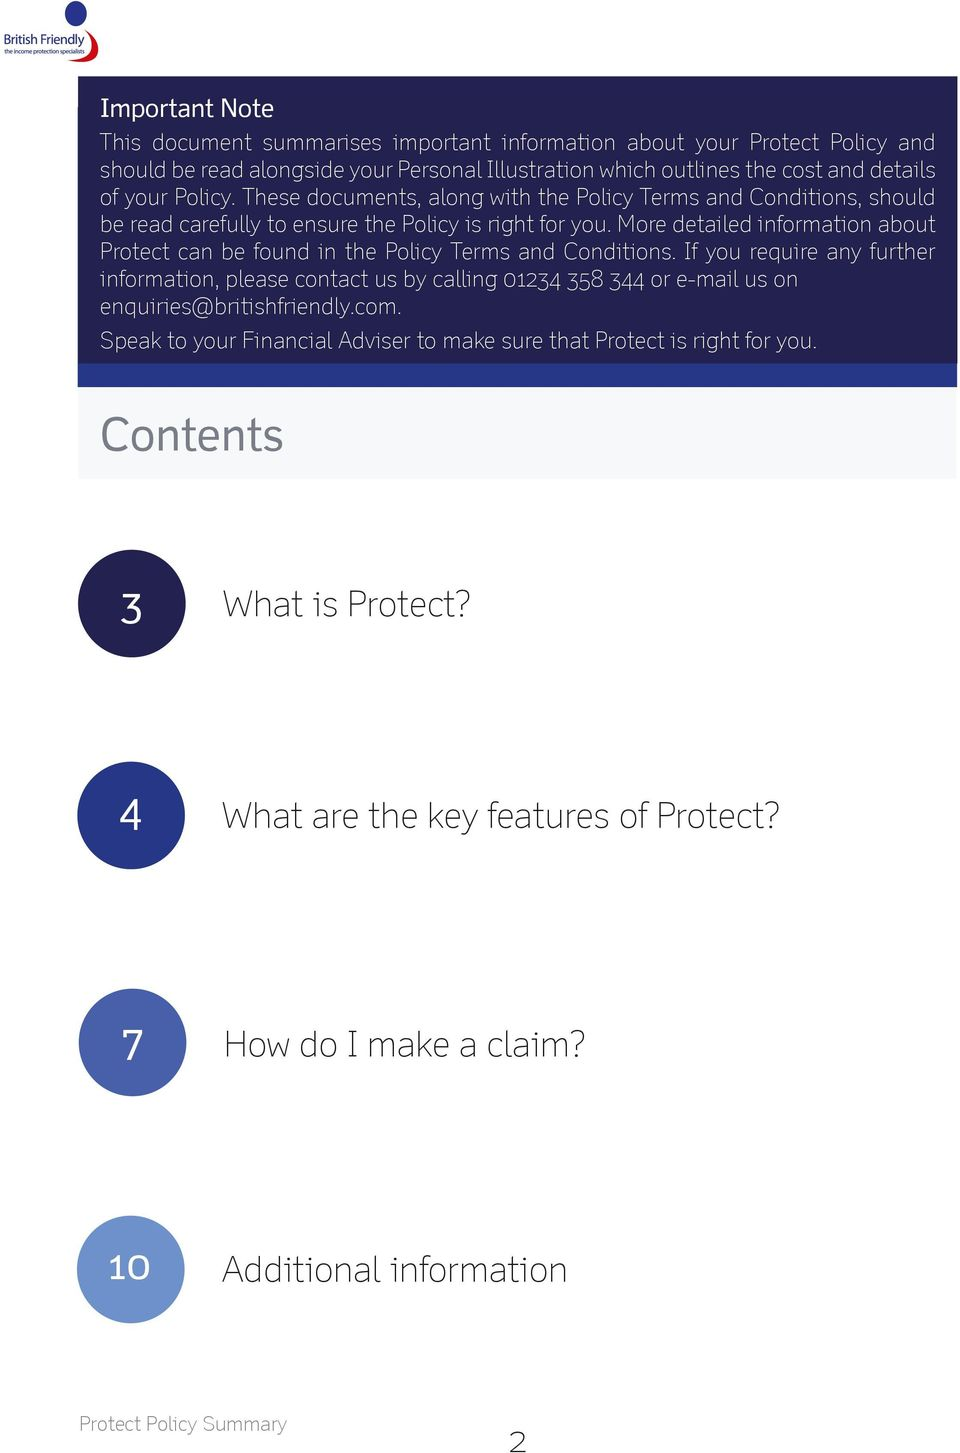 More detailed information about Protect can be found in the Policy Terms and Conditions.